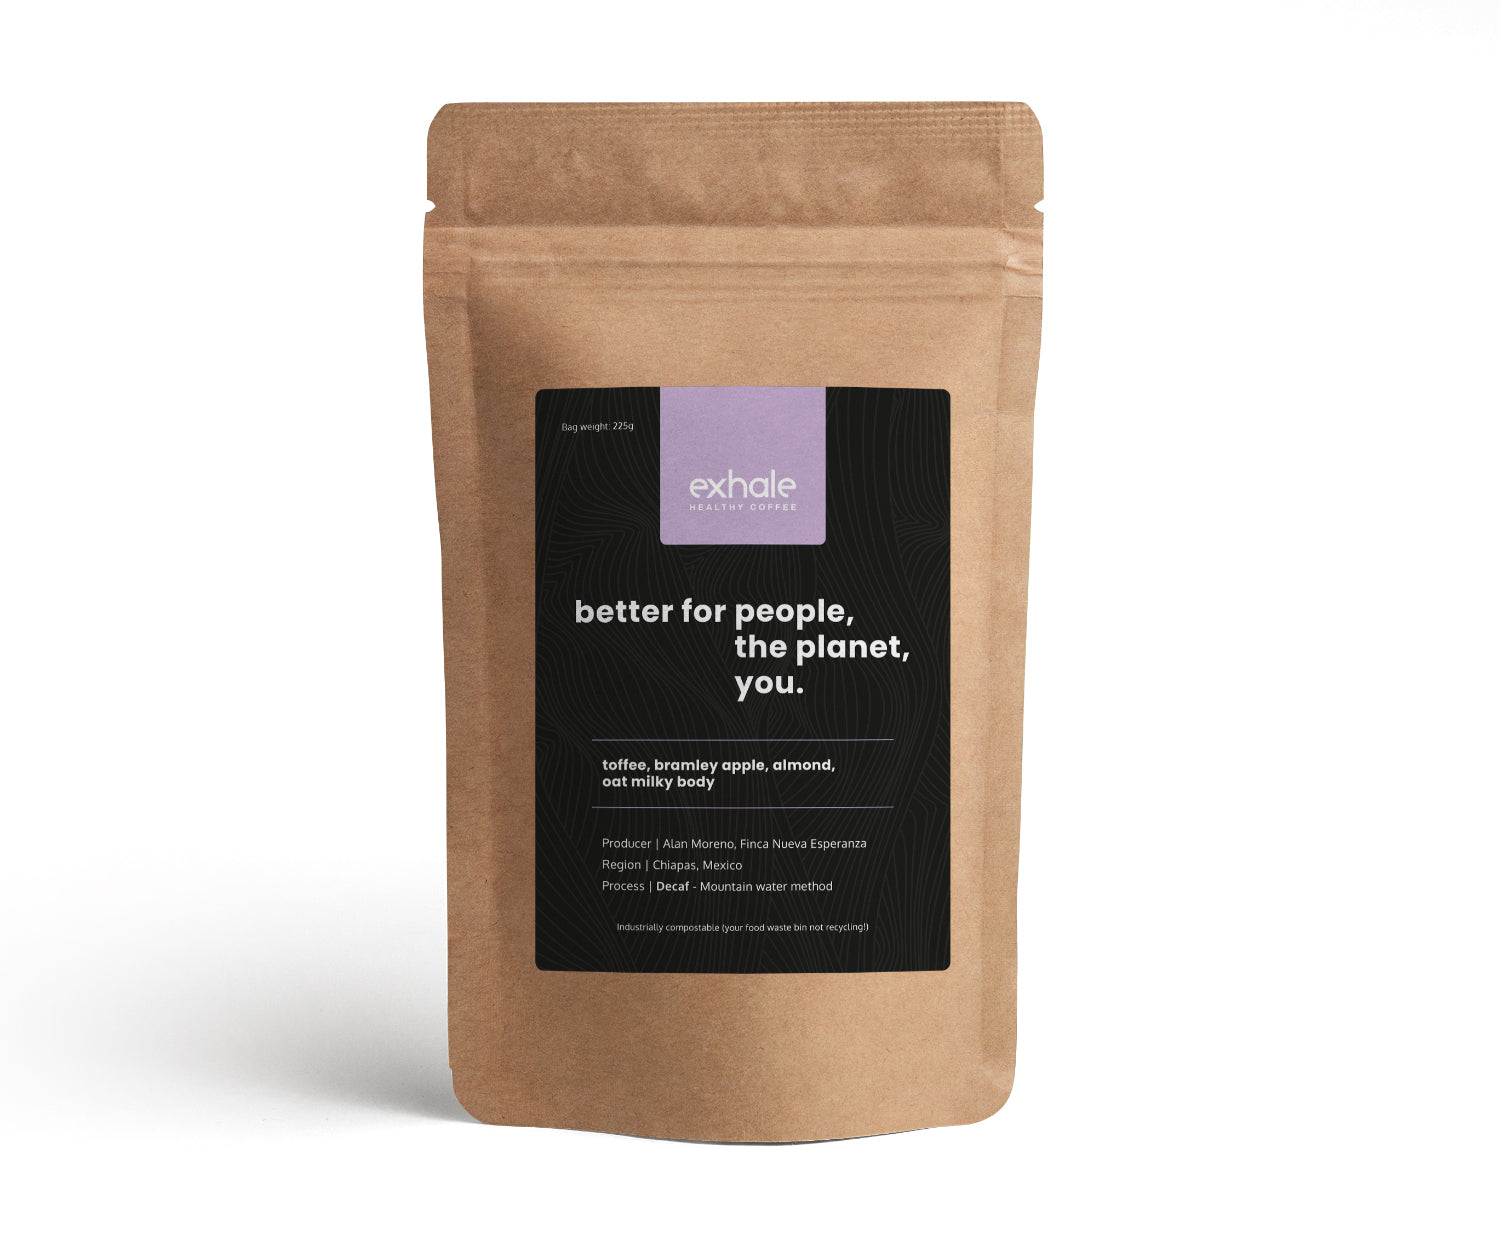 exhale regular decaffeinated coffee in a compostable and recyclable pouch